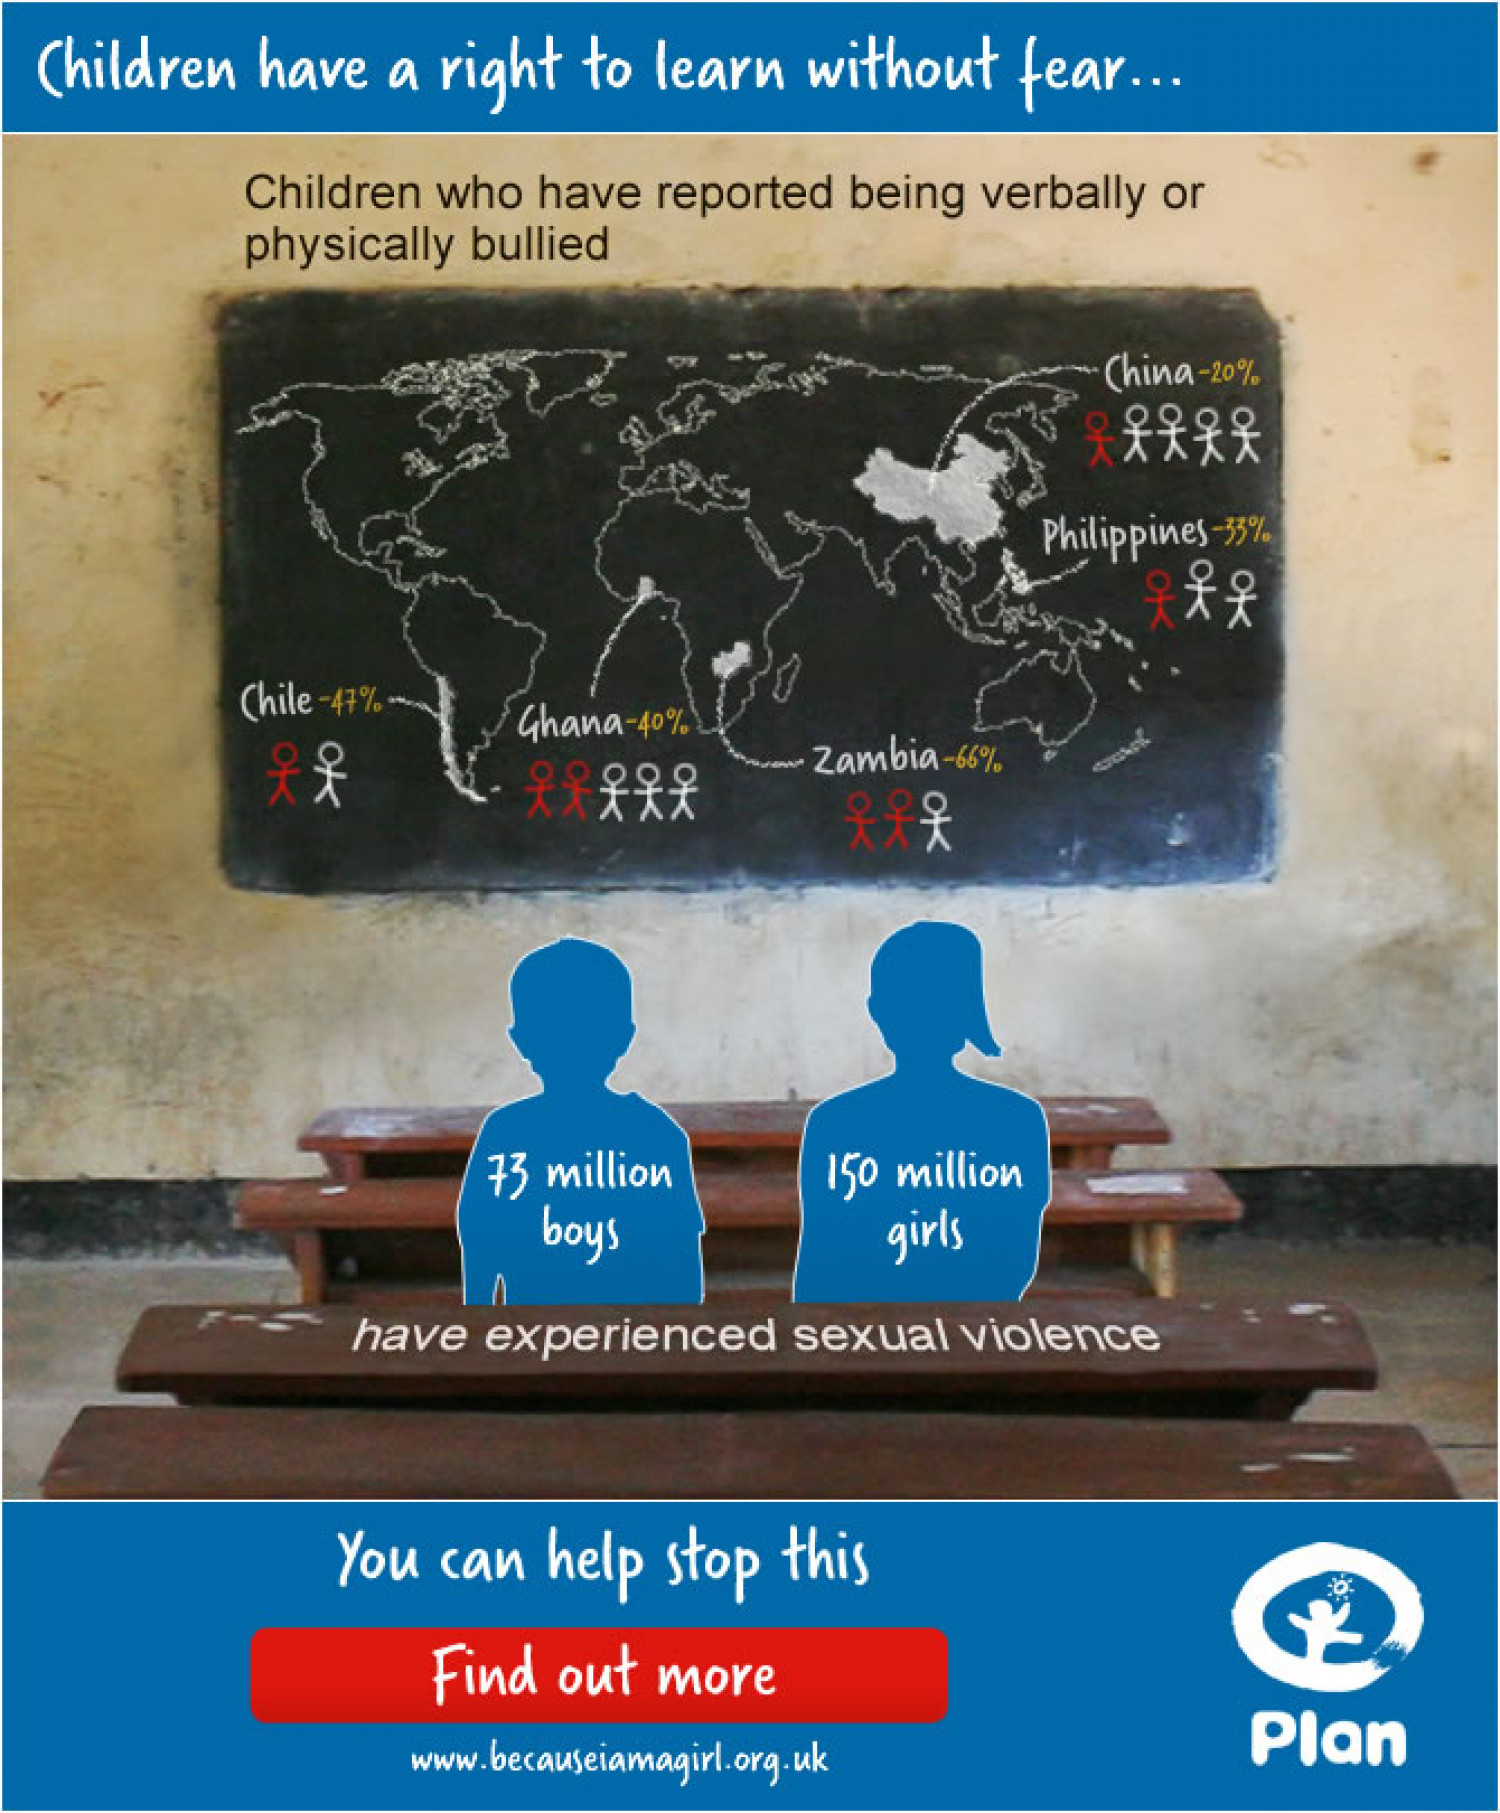 Violence against children in and around school Infographic